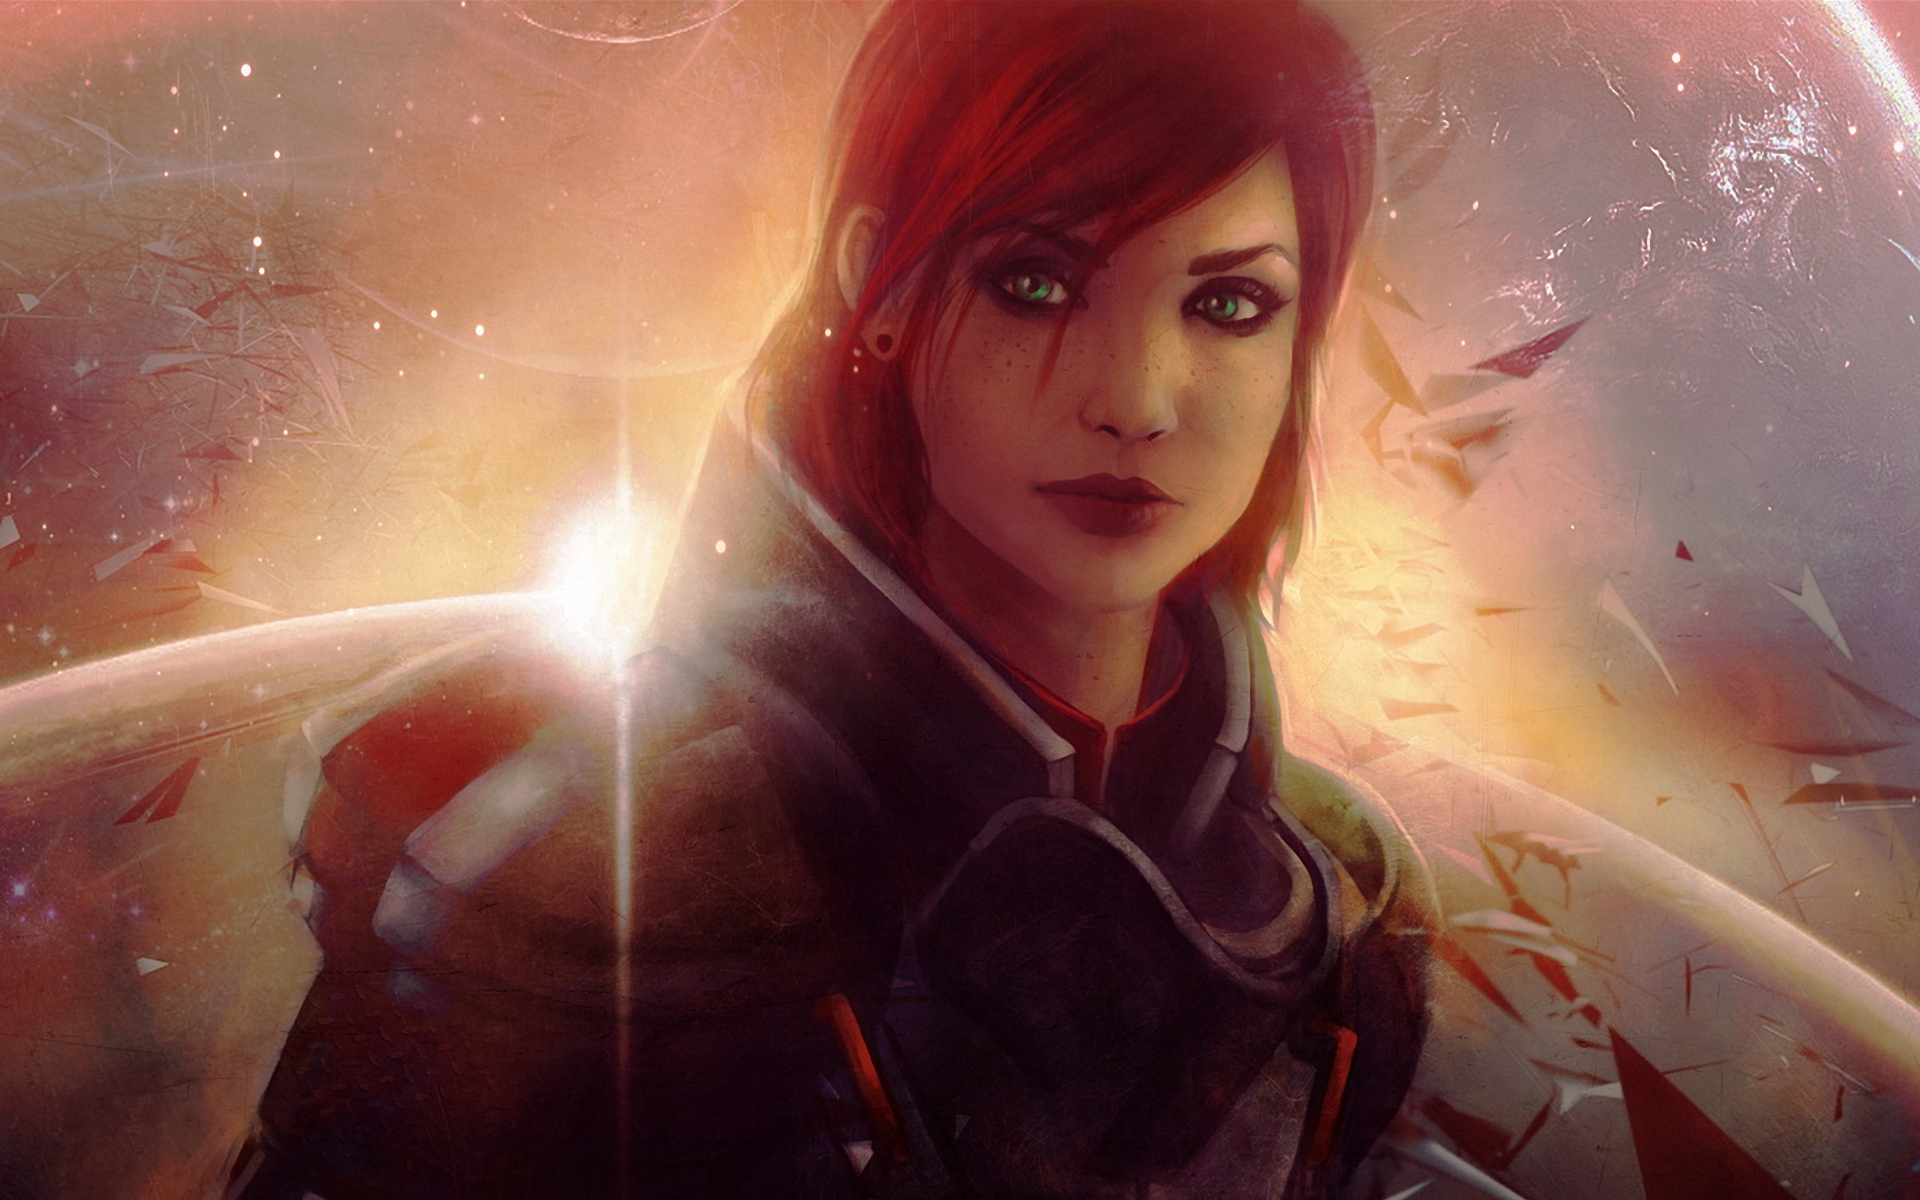 Mass Effect Full Hd Wallpaper And Background Image -5440